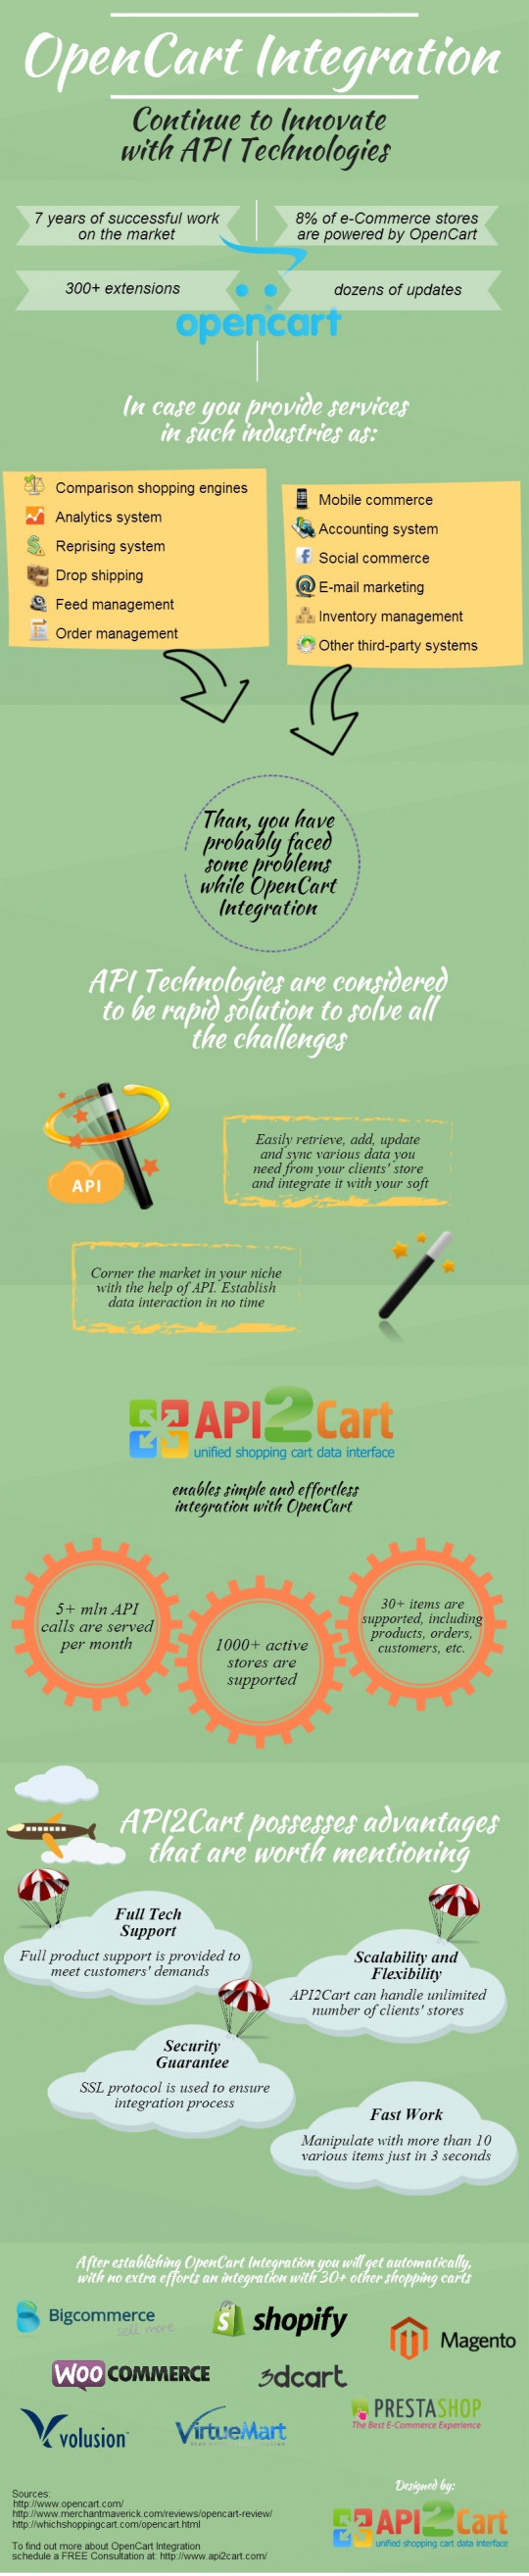 OpenCart Integration: Continue to Innovate with API Technologies